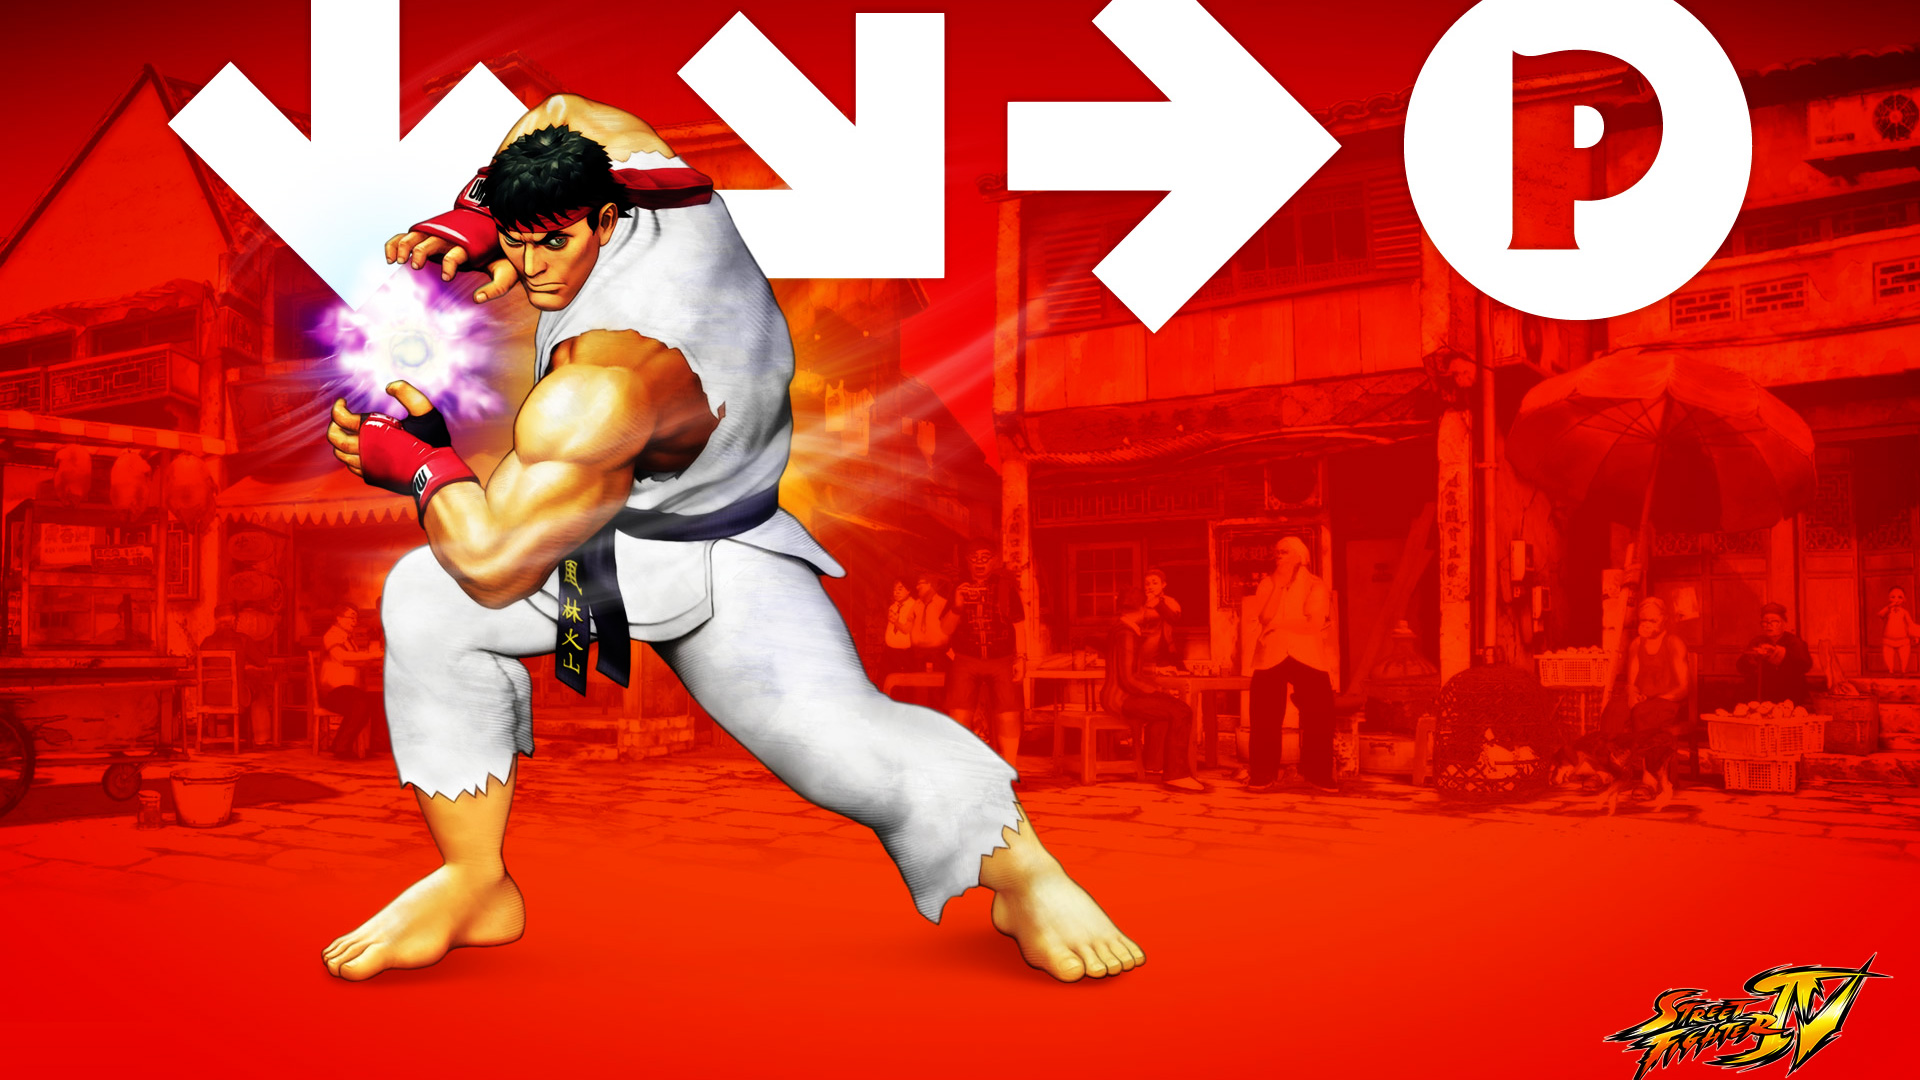 Street Fighter 4 wallpaper 2